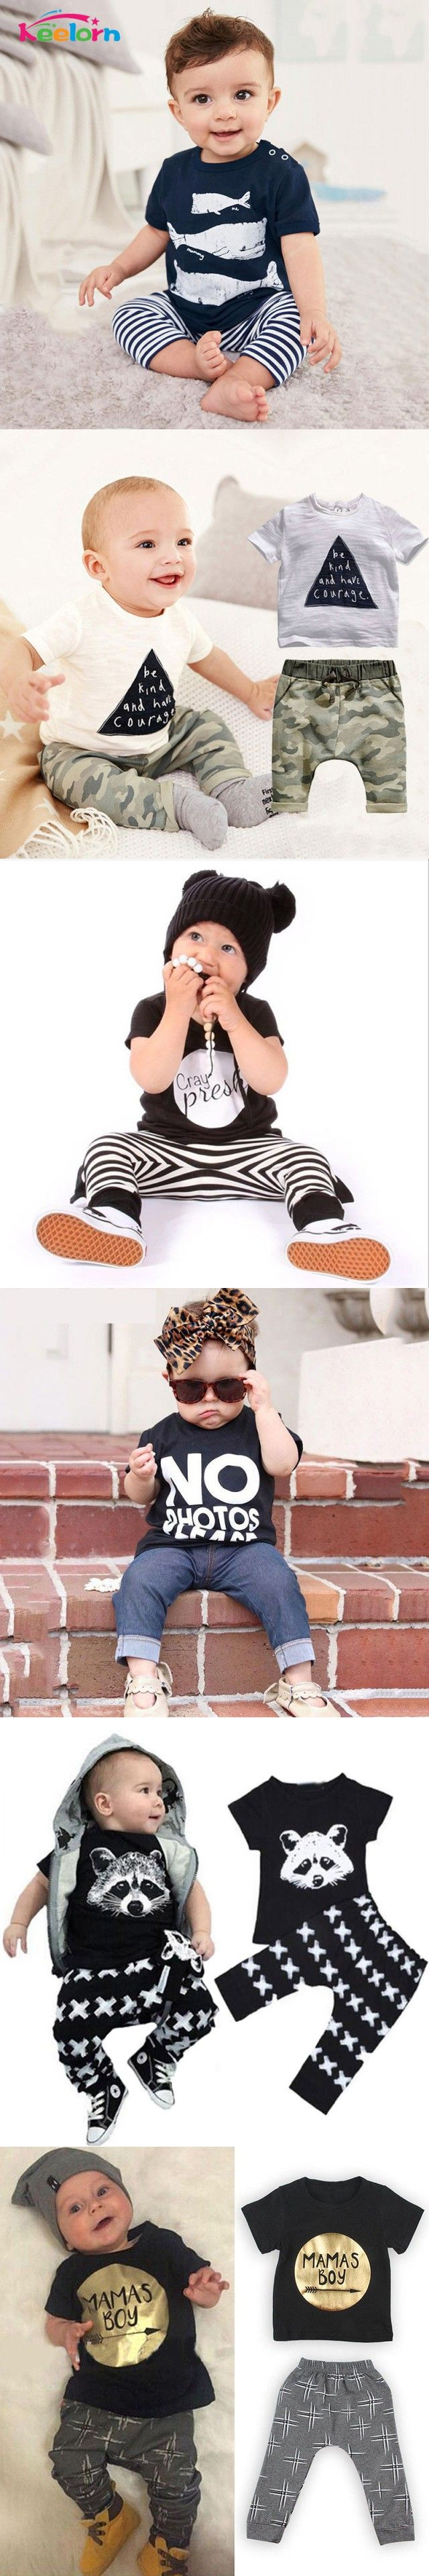 2016 Summer Style Infant Clothes Baby Clothing Sets Three ...